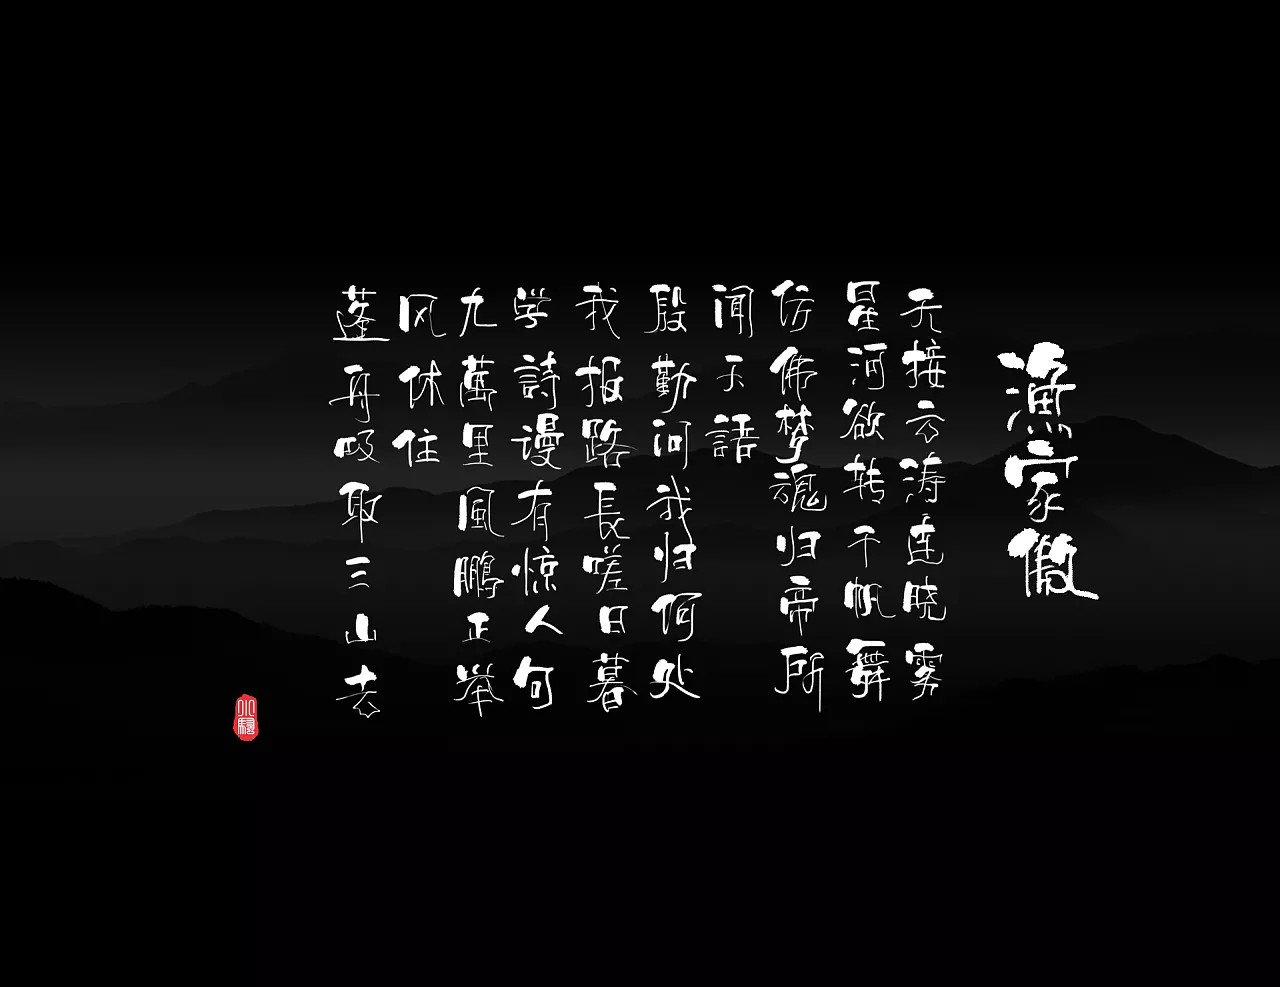 chinesefontdesign.com 2018 02 04 12 37 54 021338 50P Li Sao of Tang Song style Chinese Design Inspiration